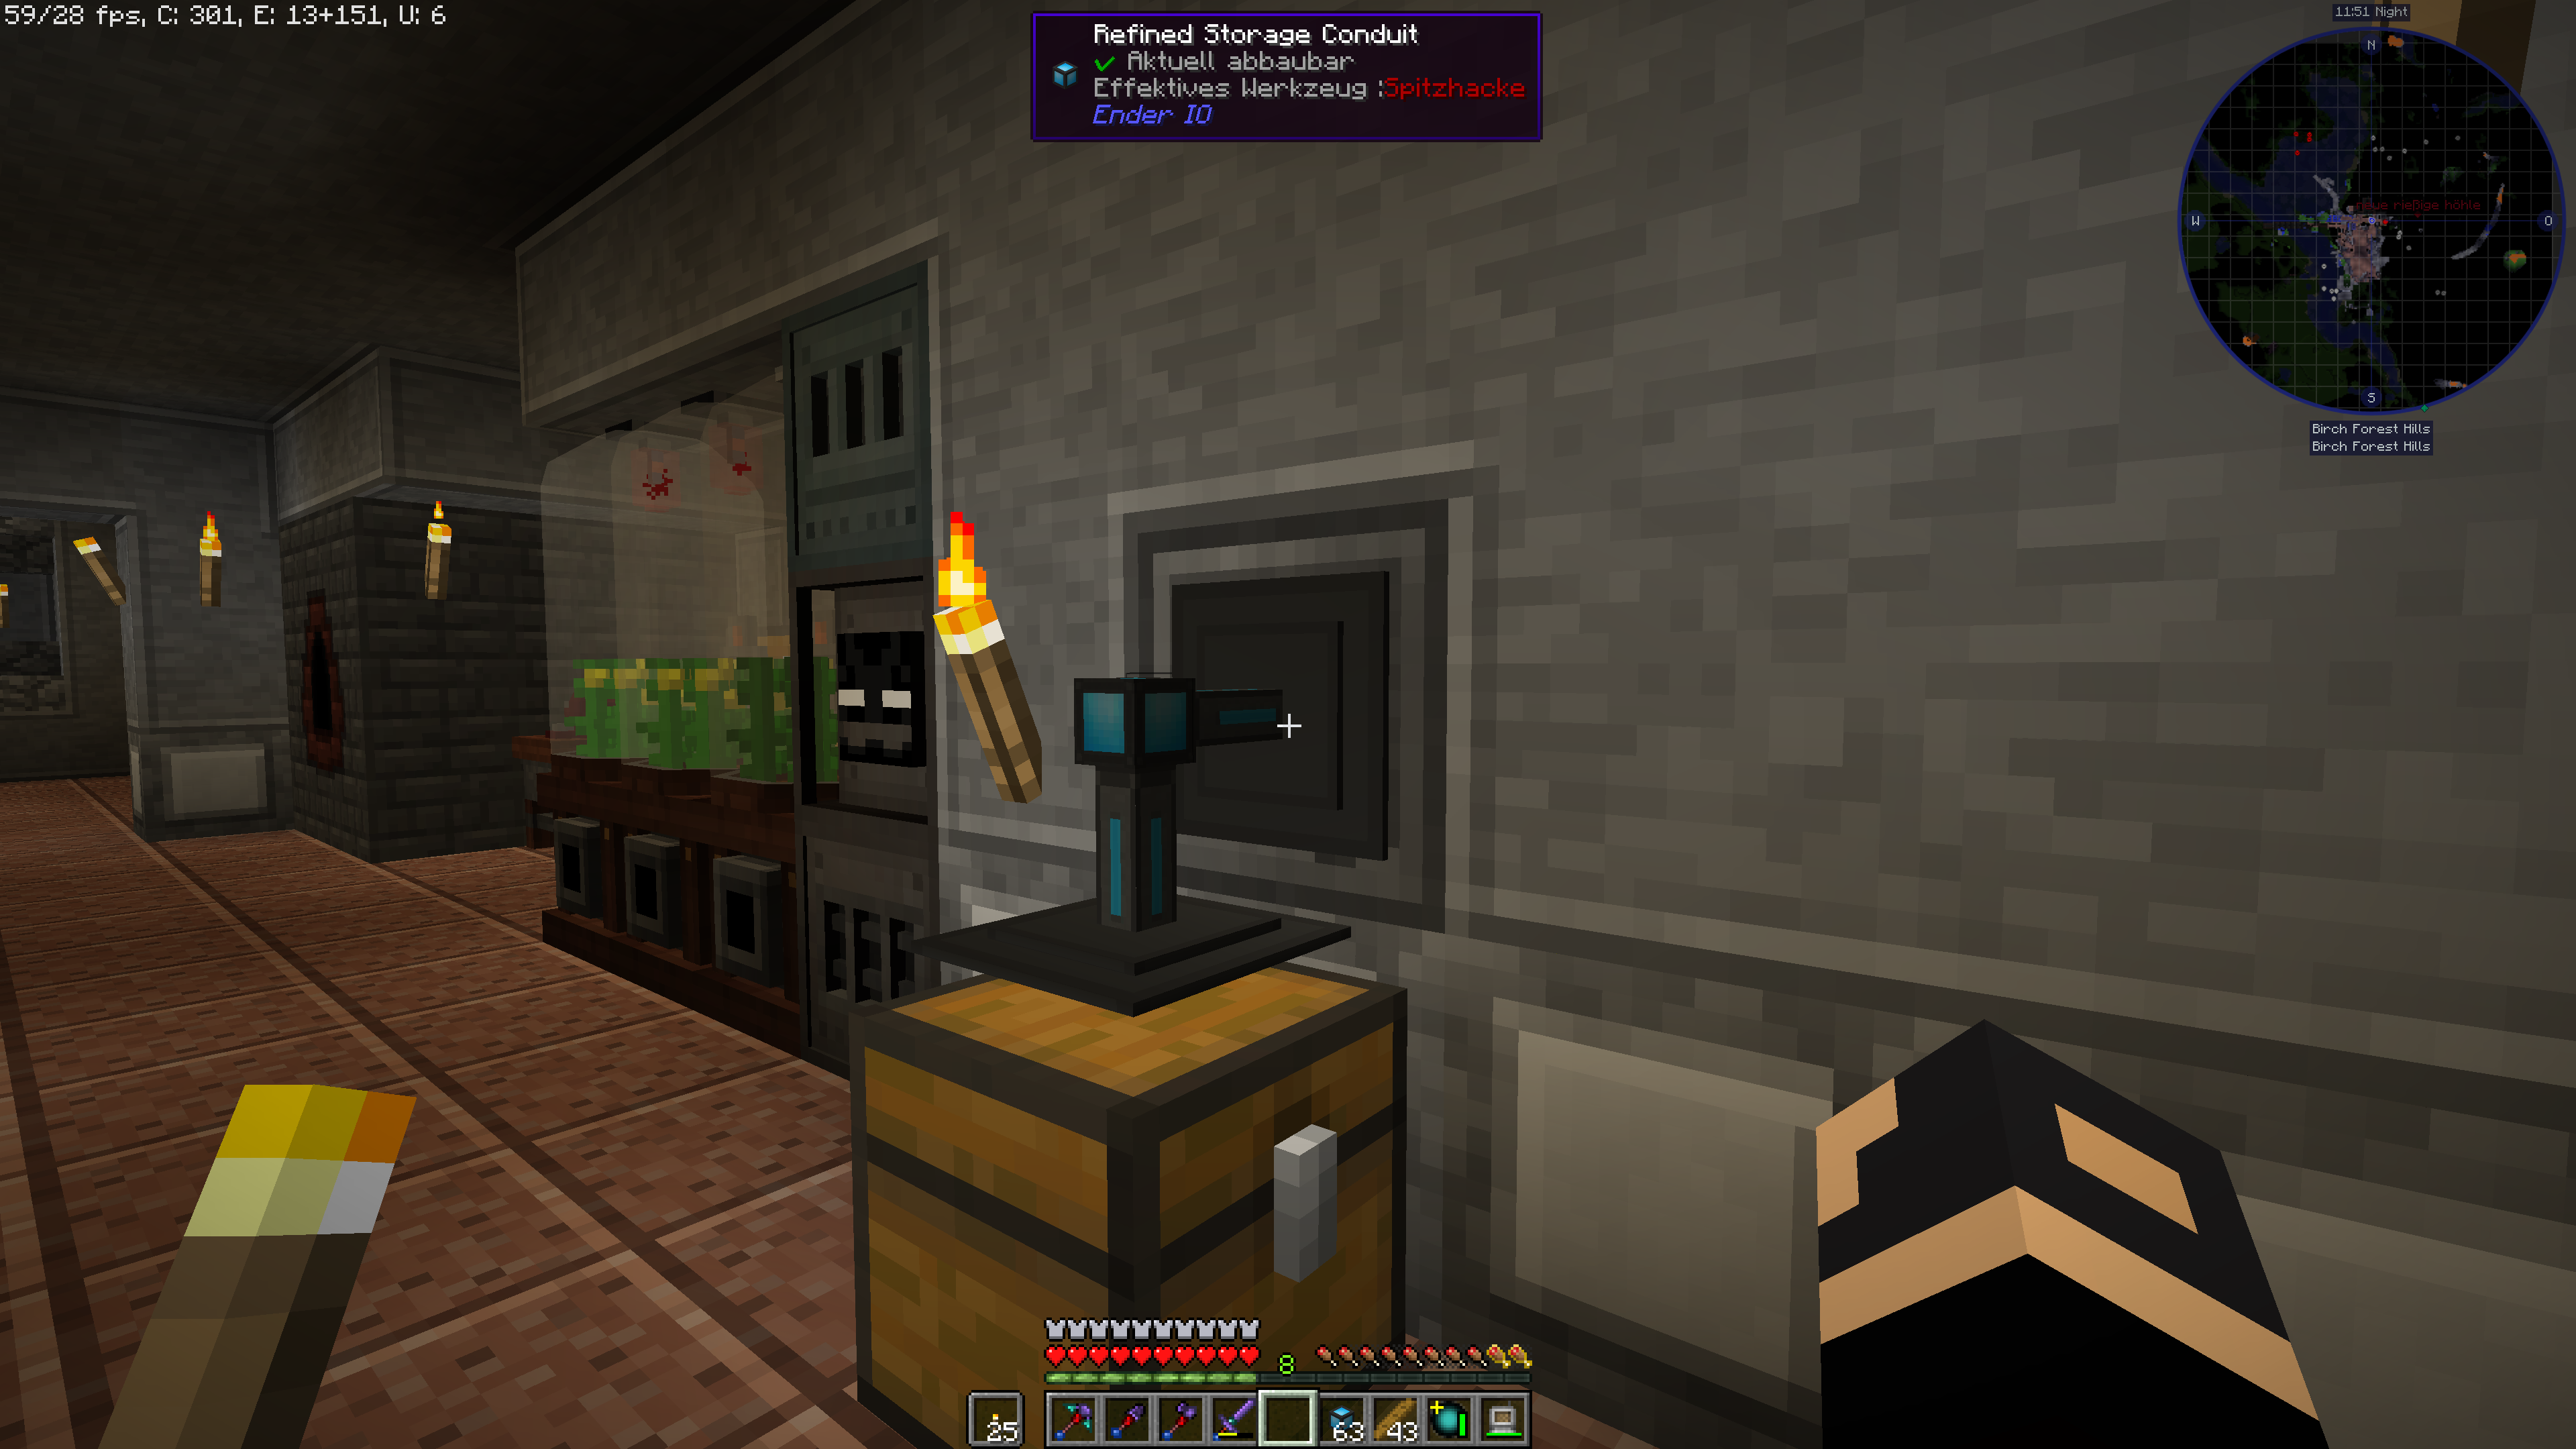 Refined Storage Enderio Cables - Exporting is not working